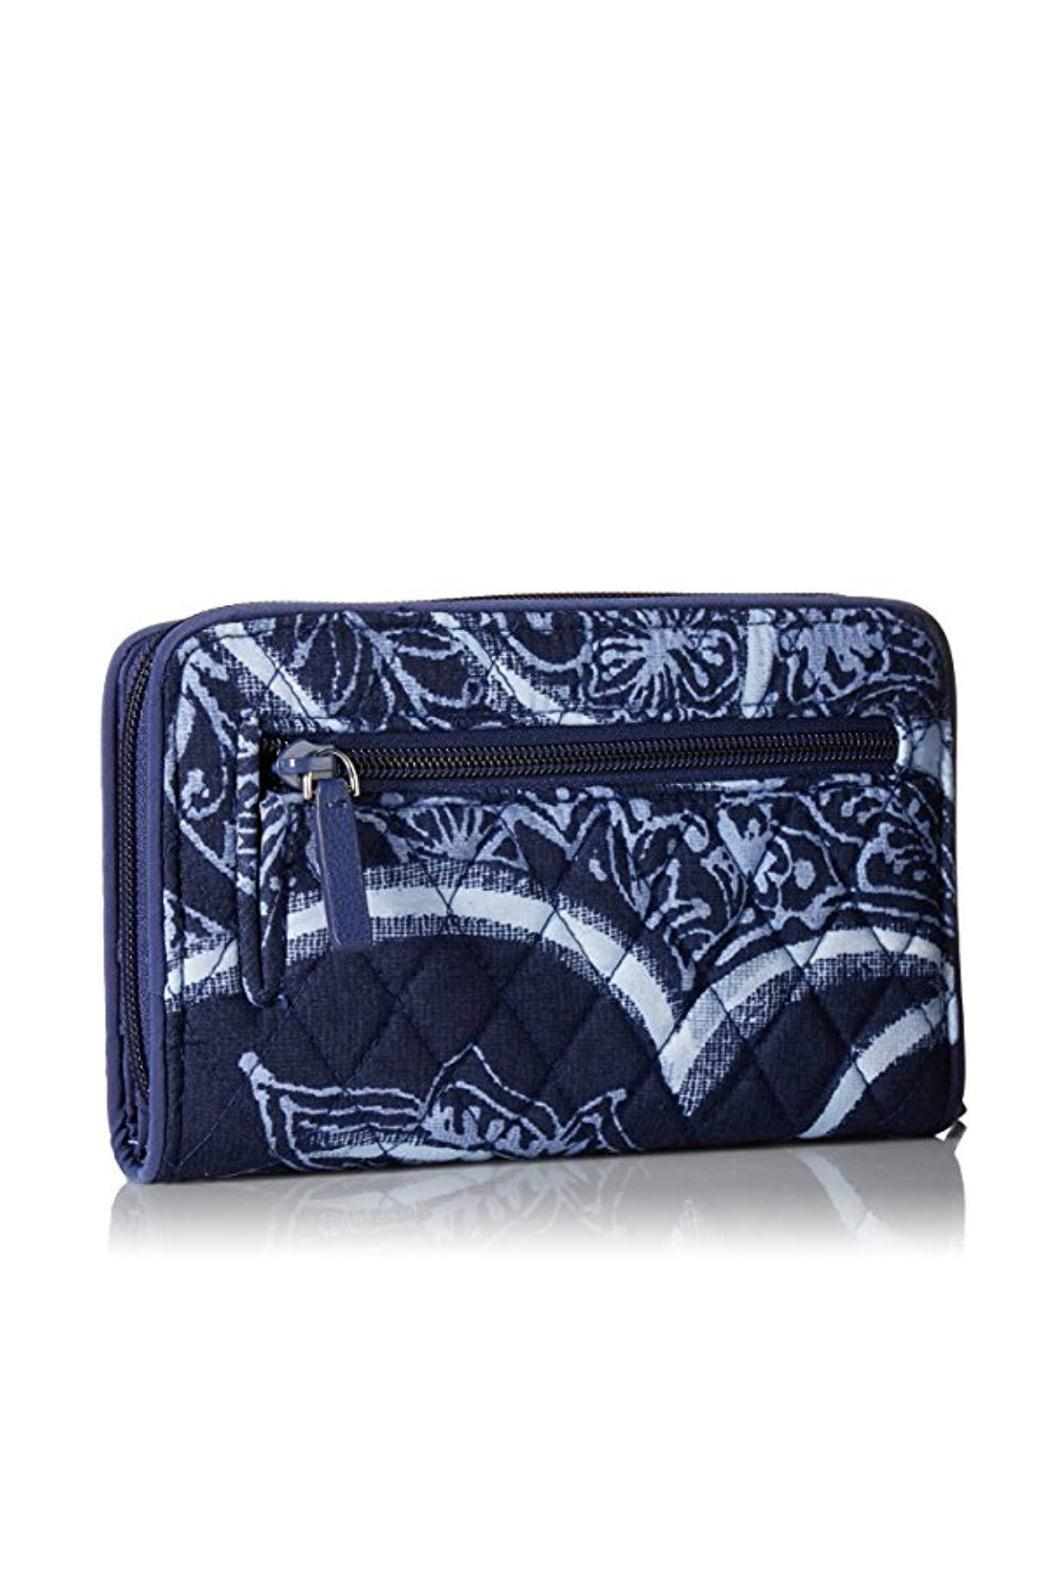 864ce1bfcf Vera Bradley Indio Rfid Turnlock from Kentucky by Mimi s Gift ...